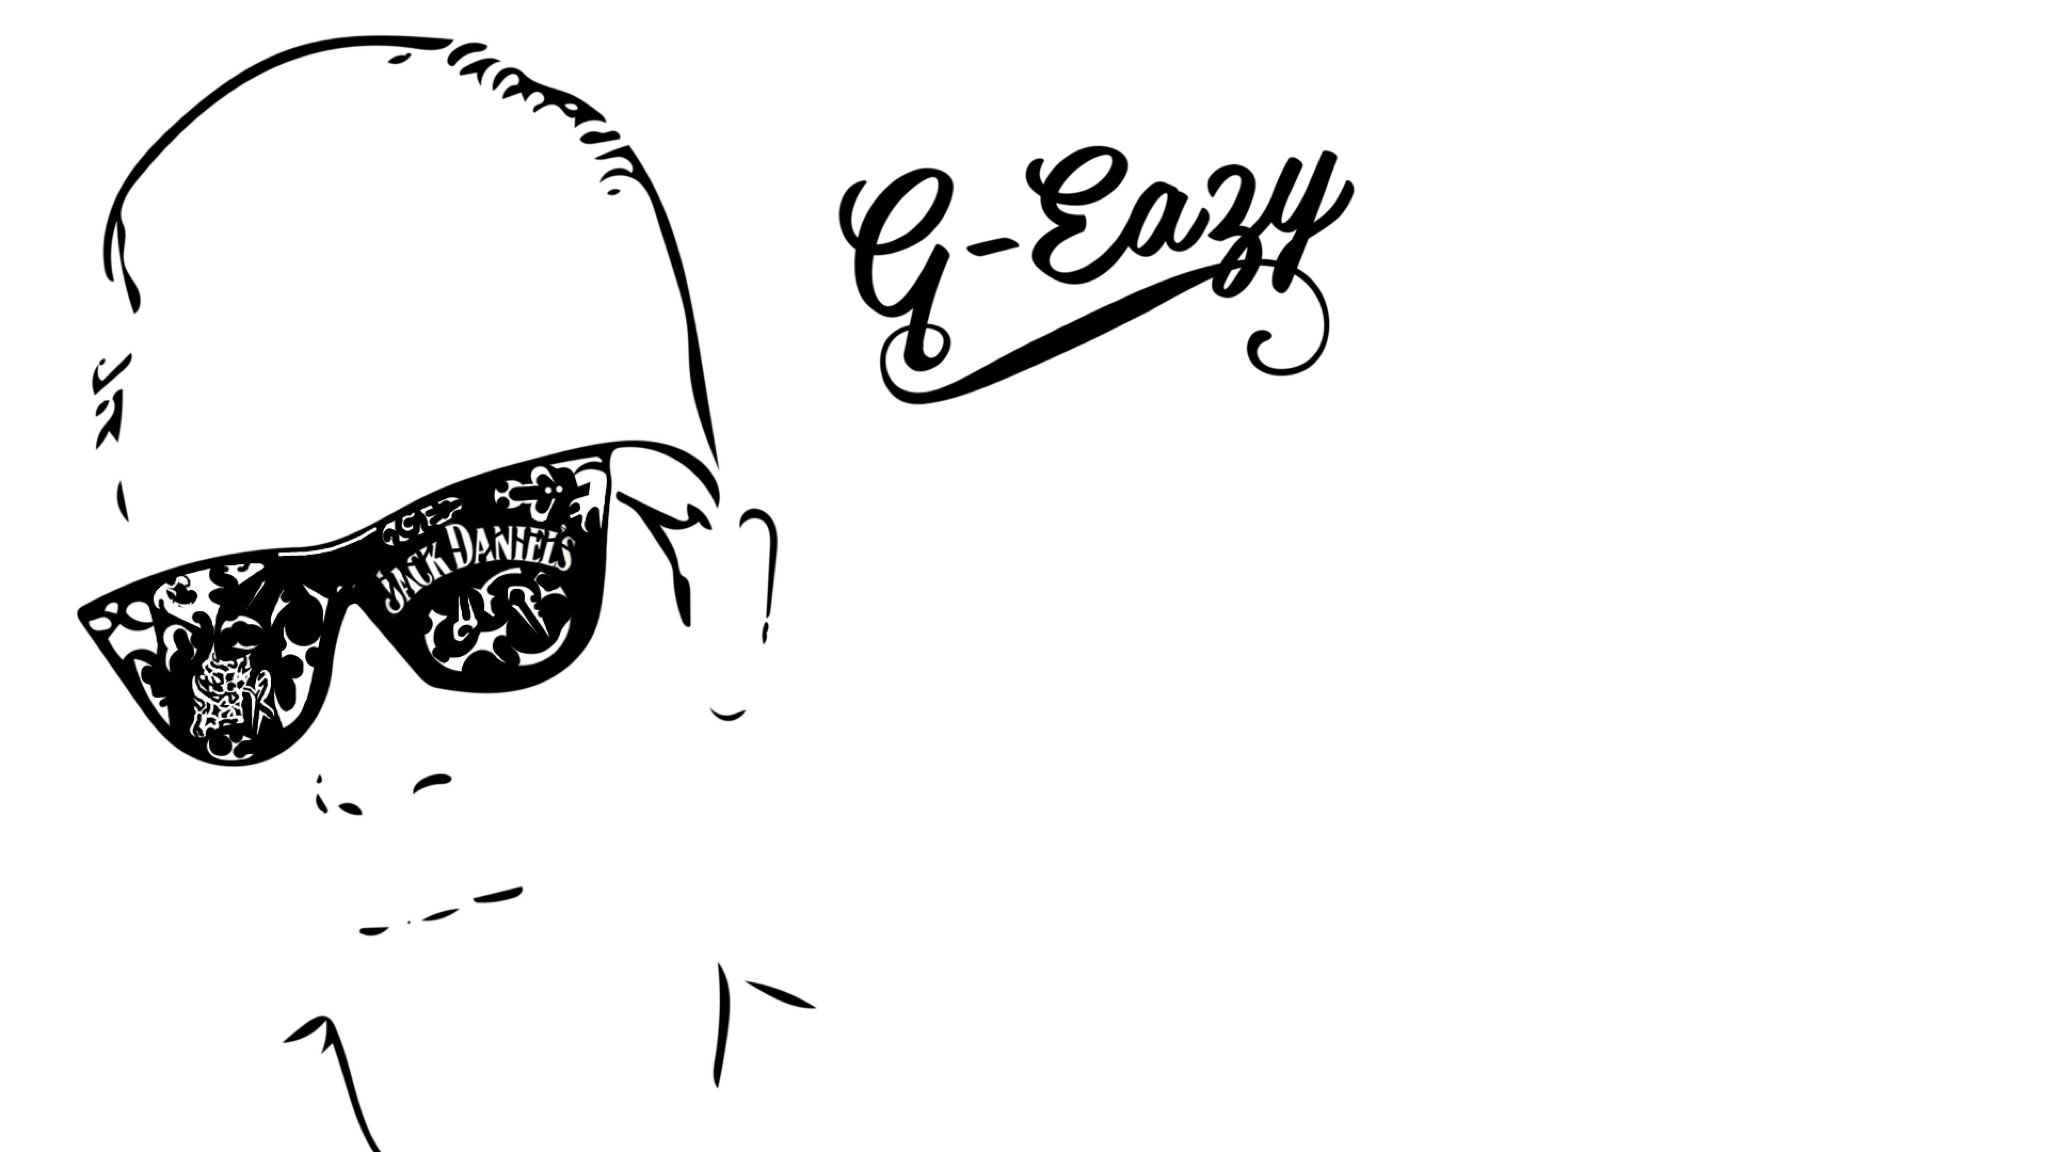 Created one for my favorite artist G-Eazy …